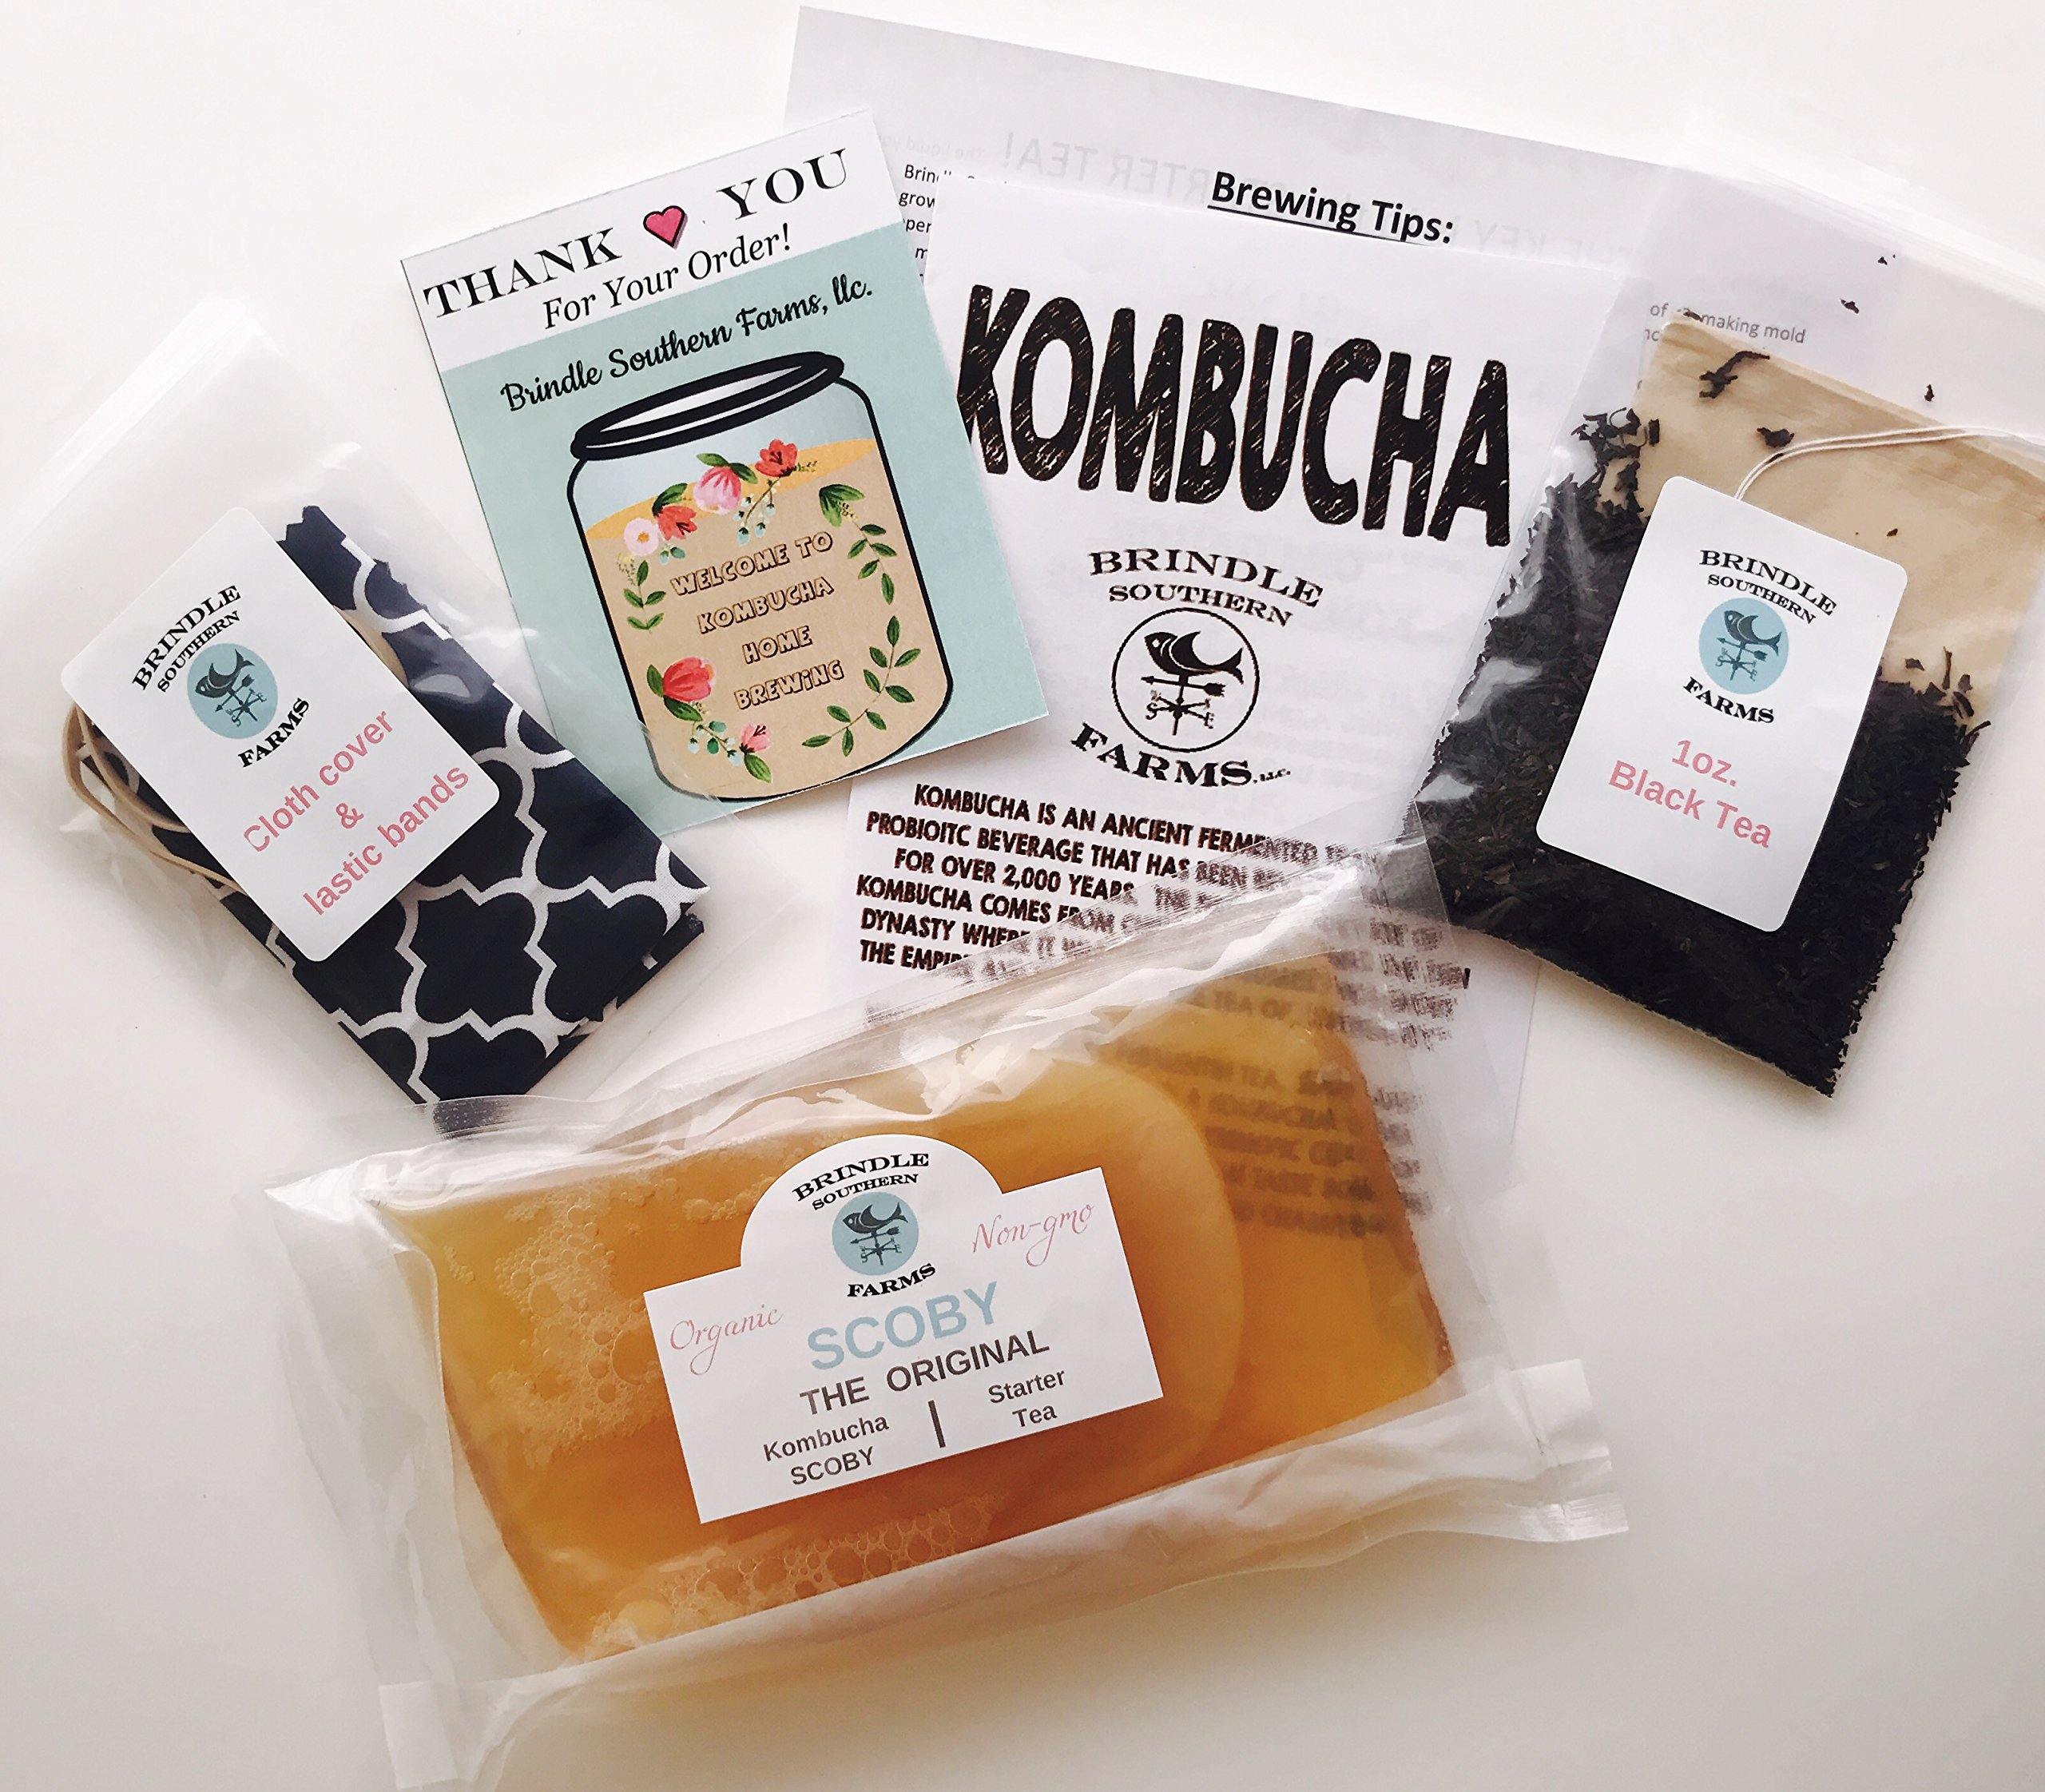 Brindle Southern Farms One Gallon Premium Kombucha SCOBY & Black Tea Brewing Set